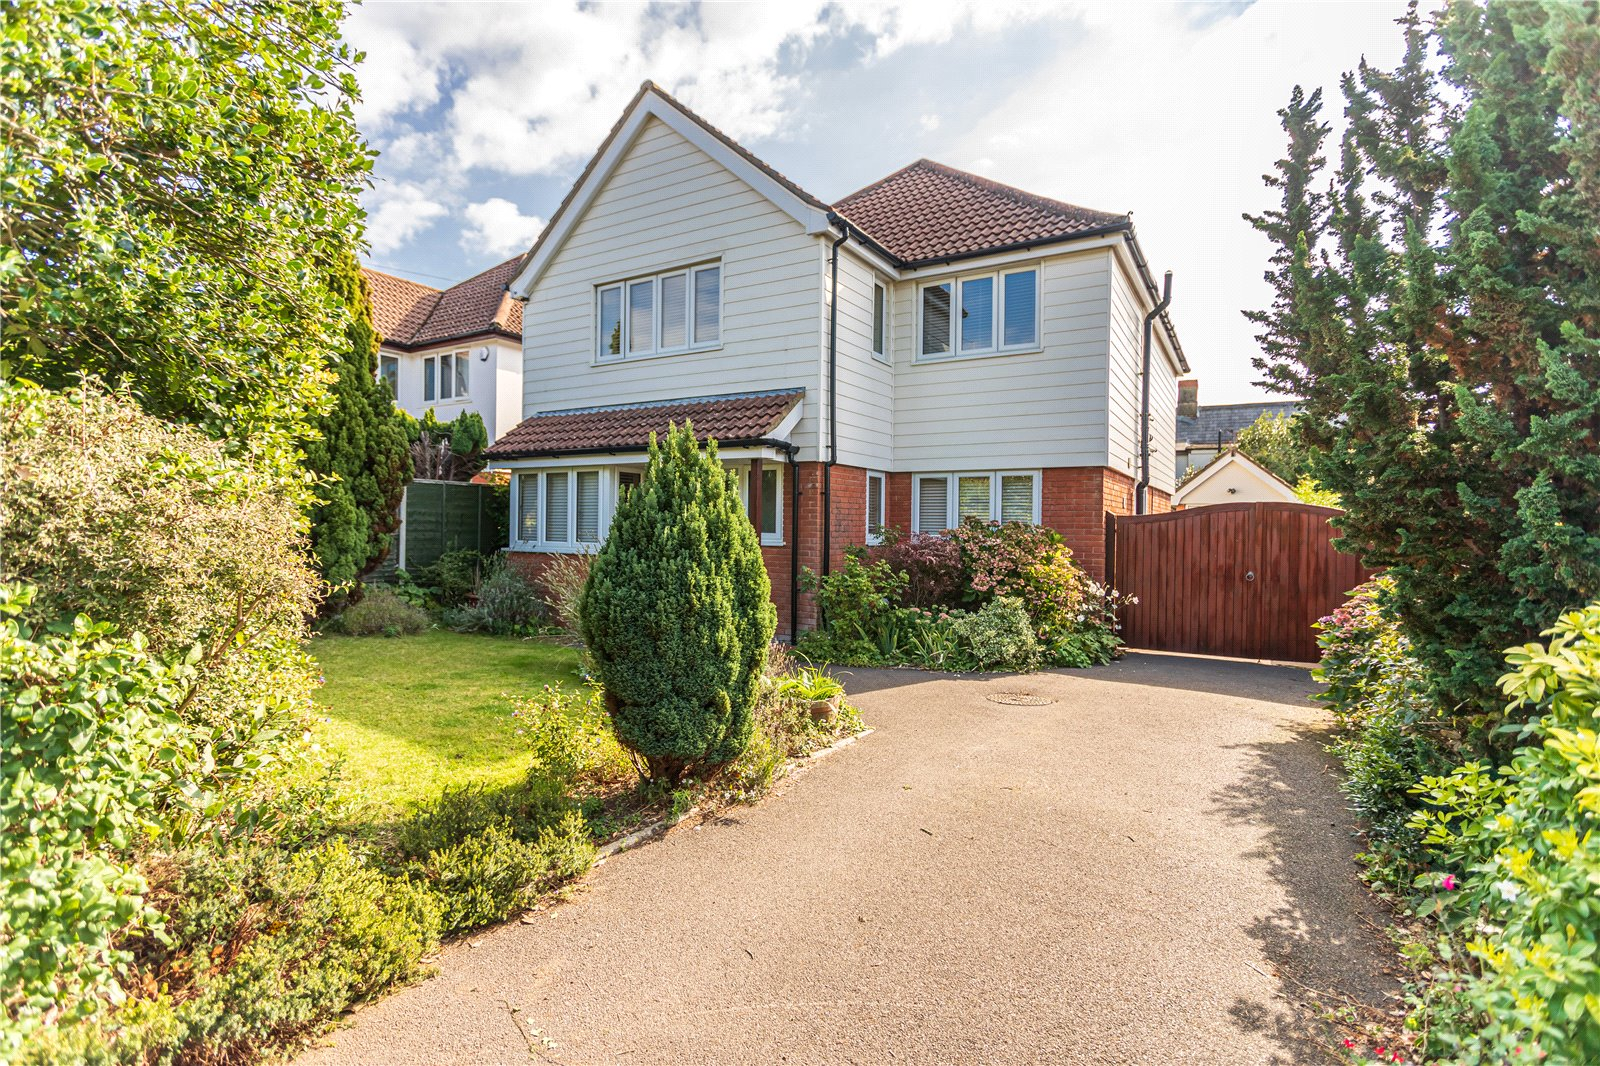 4 bed house for sale in Glenair Avenue, Lower Parkstone - Property Image 1